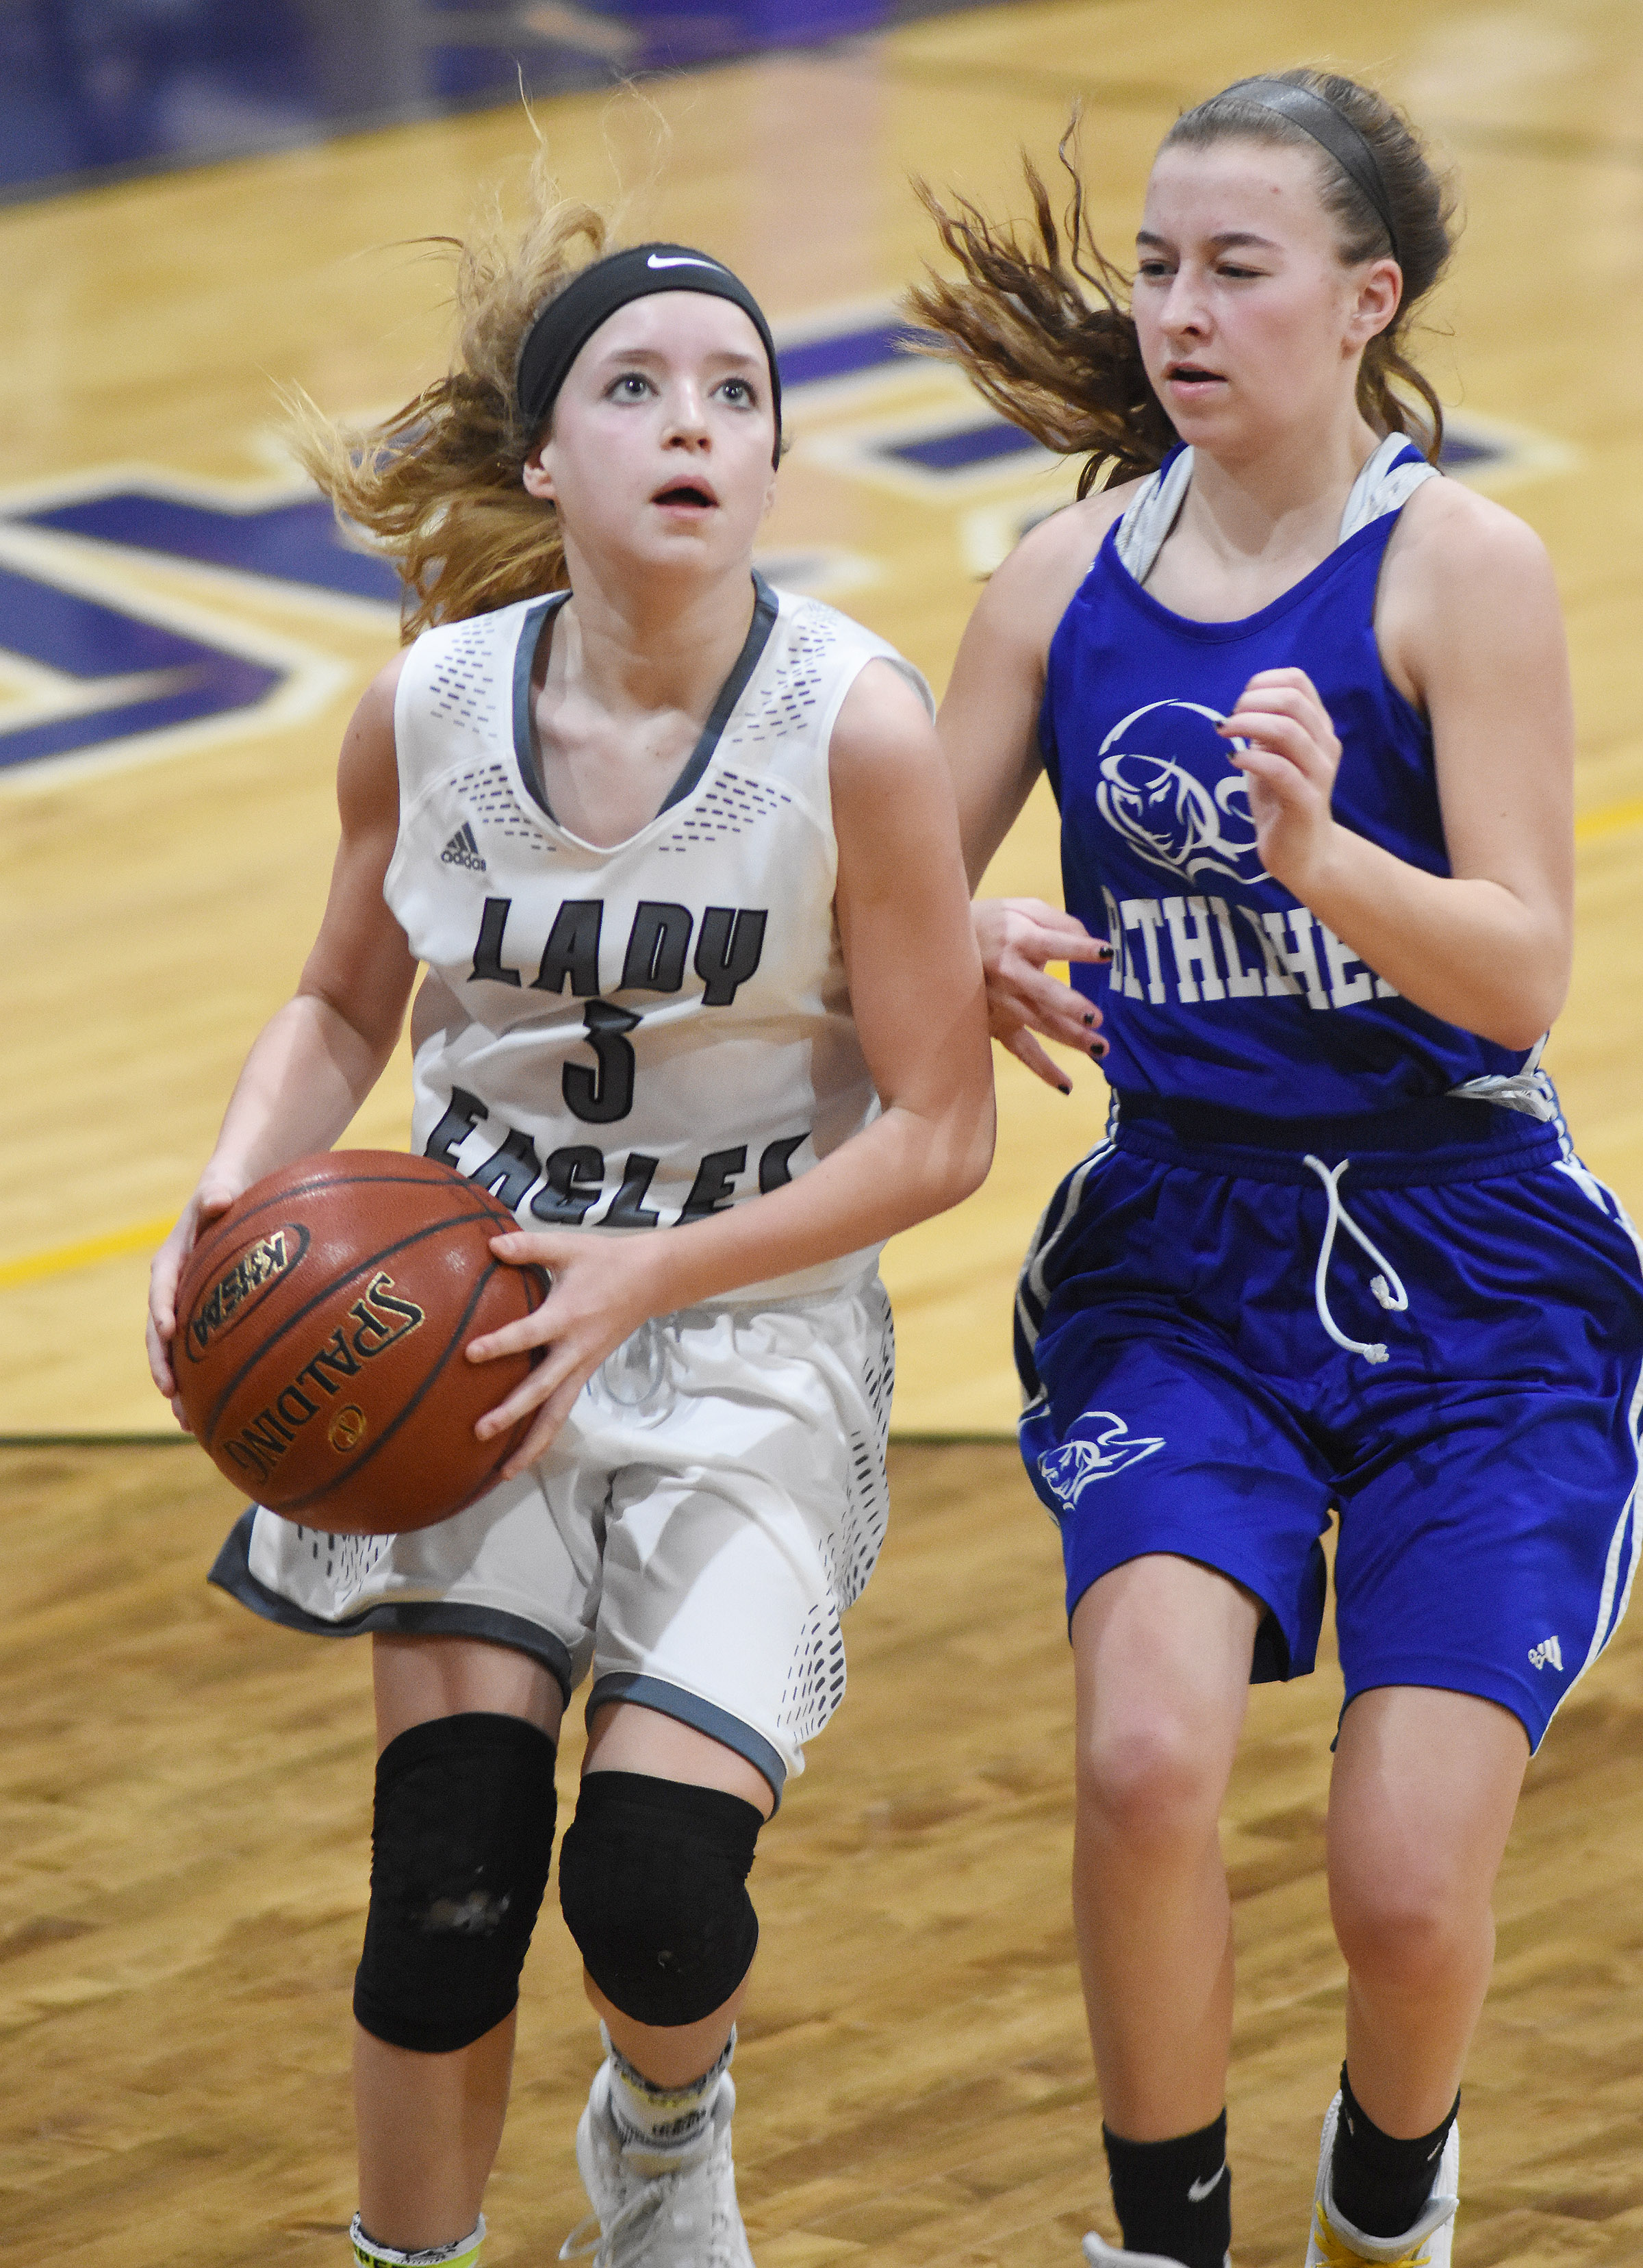 Campbellsville Middle School eighth-grader Rylee Petett drives the ball.